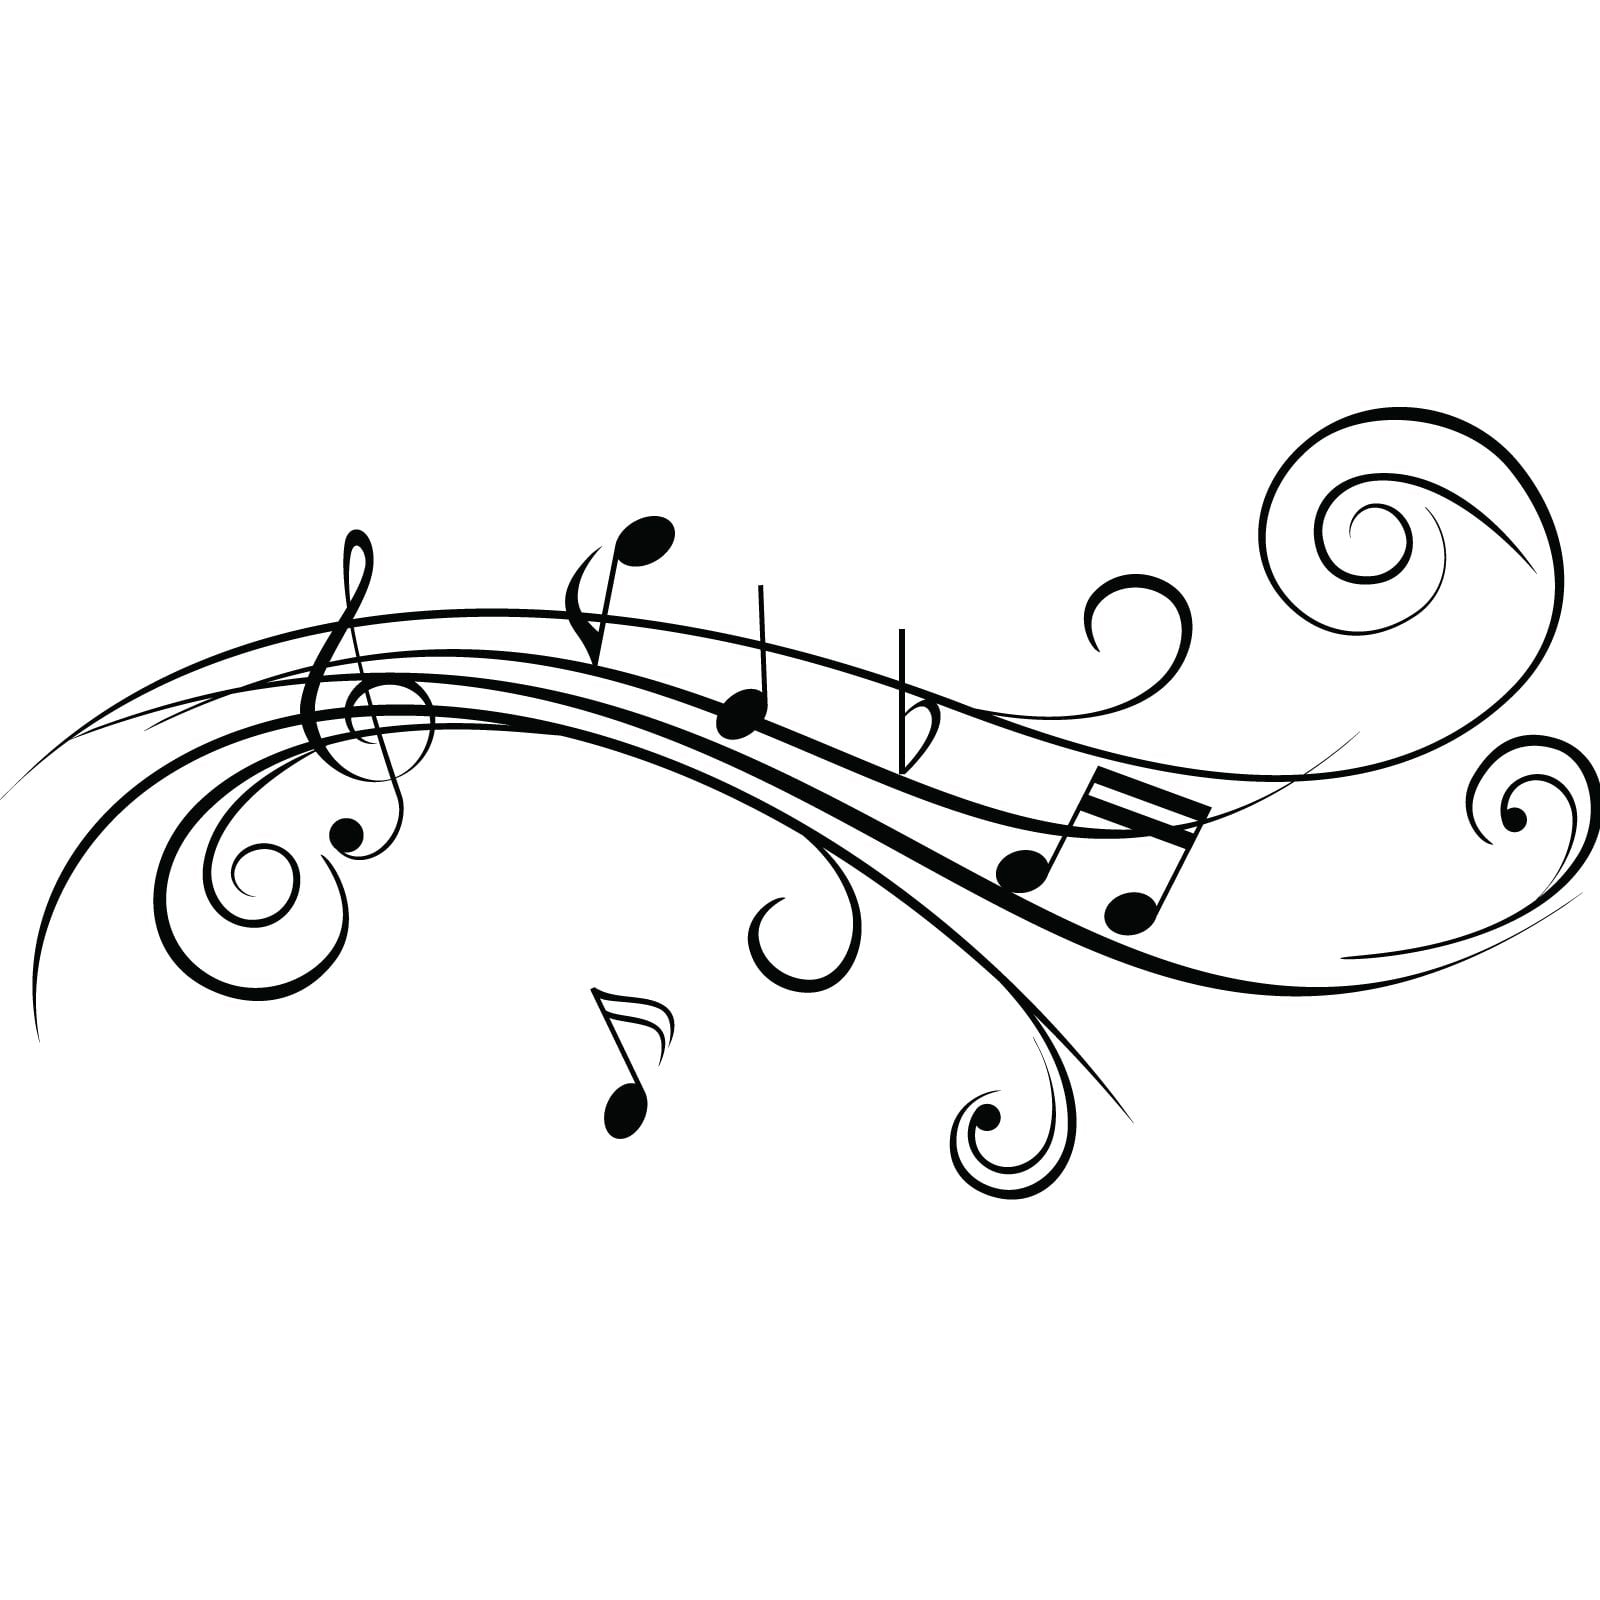 Wall Sticker Pictures Cool Musical Notes V2 Wall Sticker World Of Wall Stickers